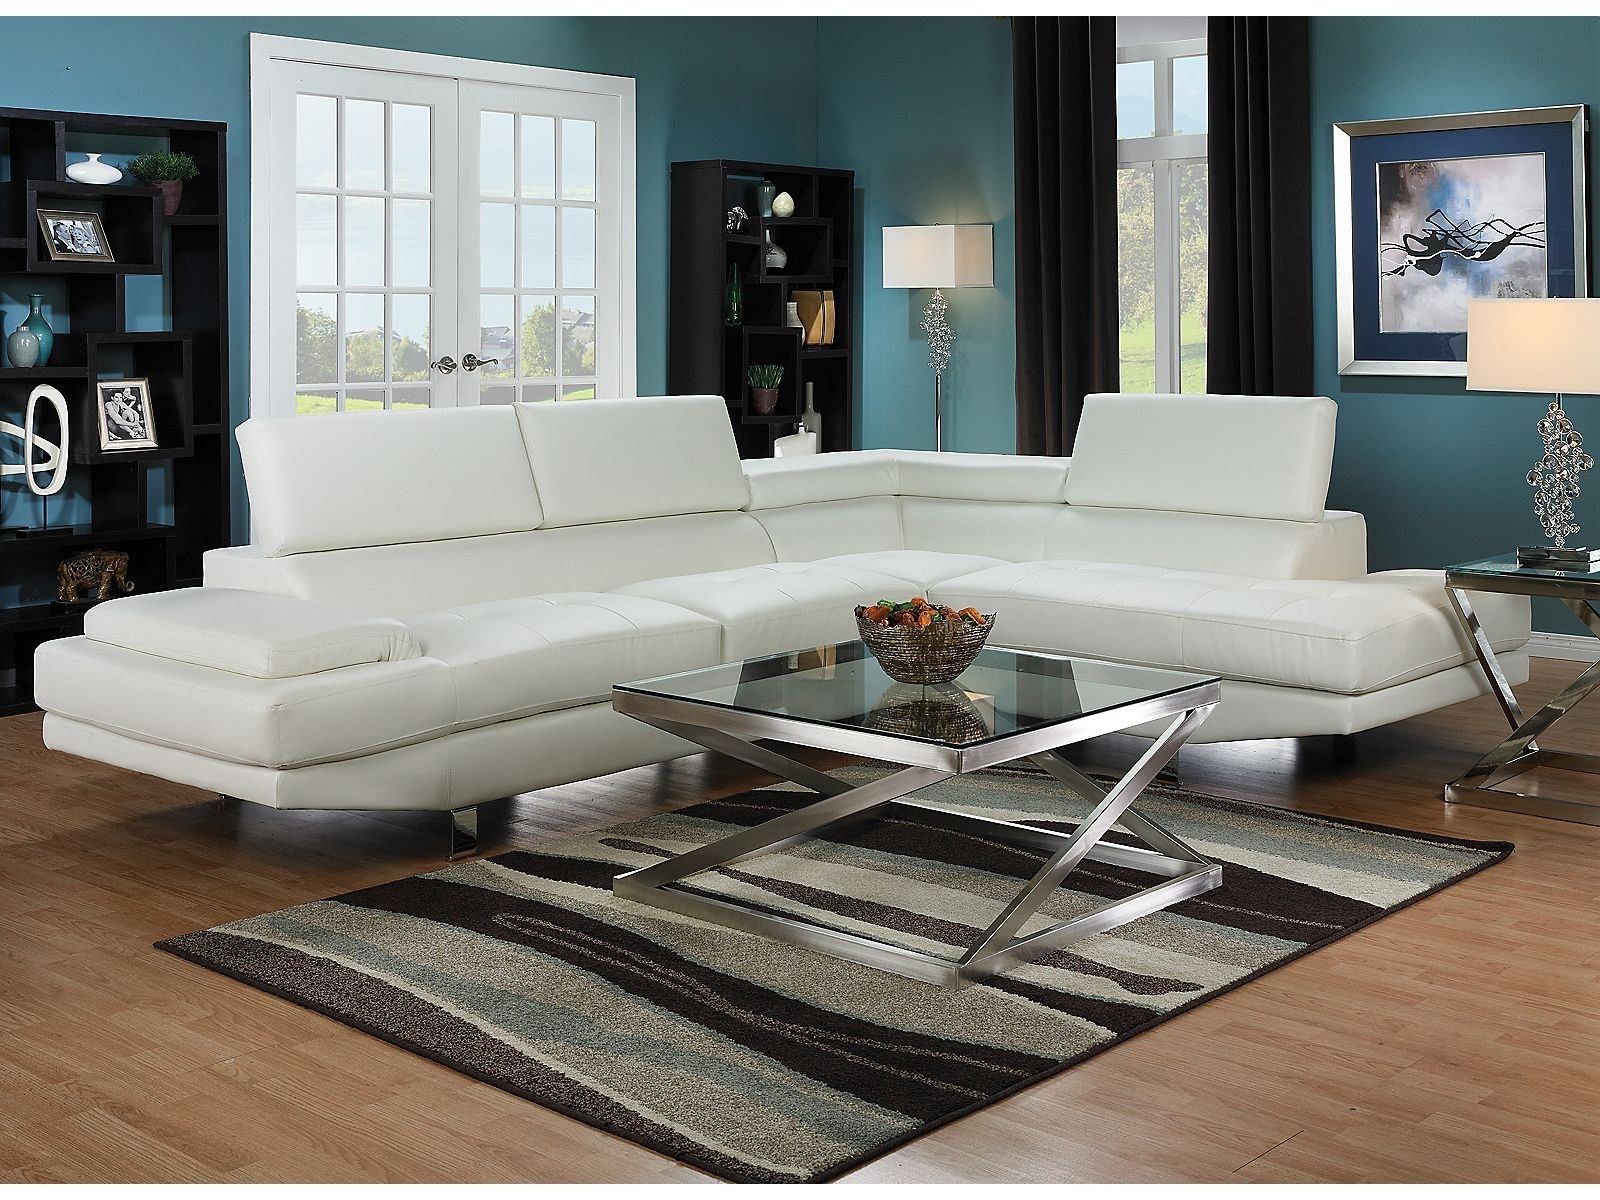 Zane 2-Piece Sectional With Right-Facing Chaise - White | Things pertaining to Sectional Sofas At Brick (Image 15 of 15)